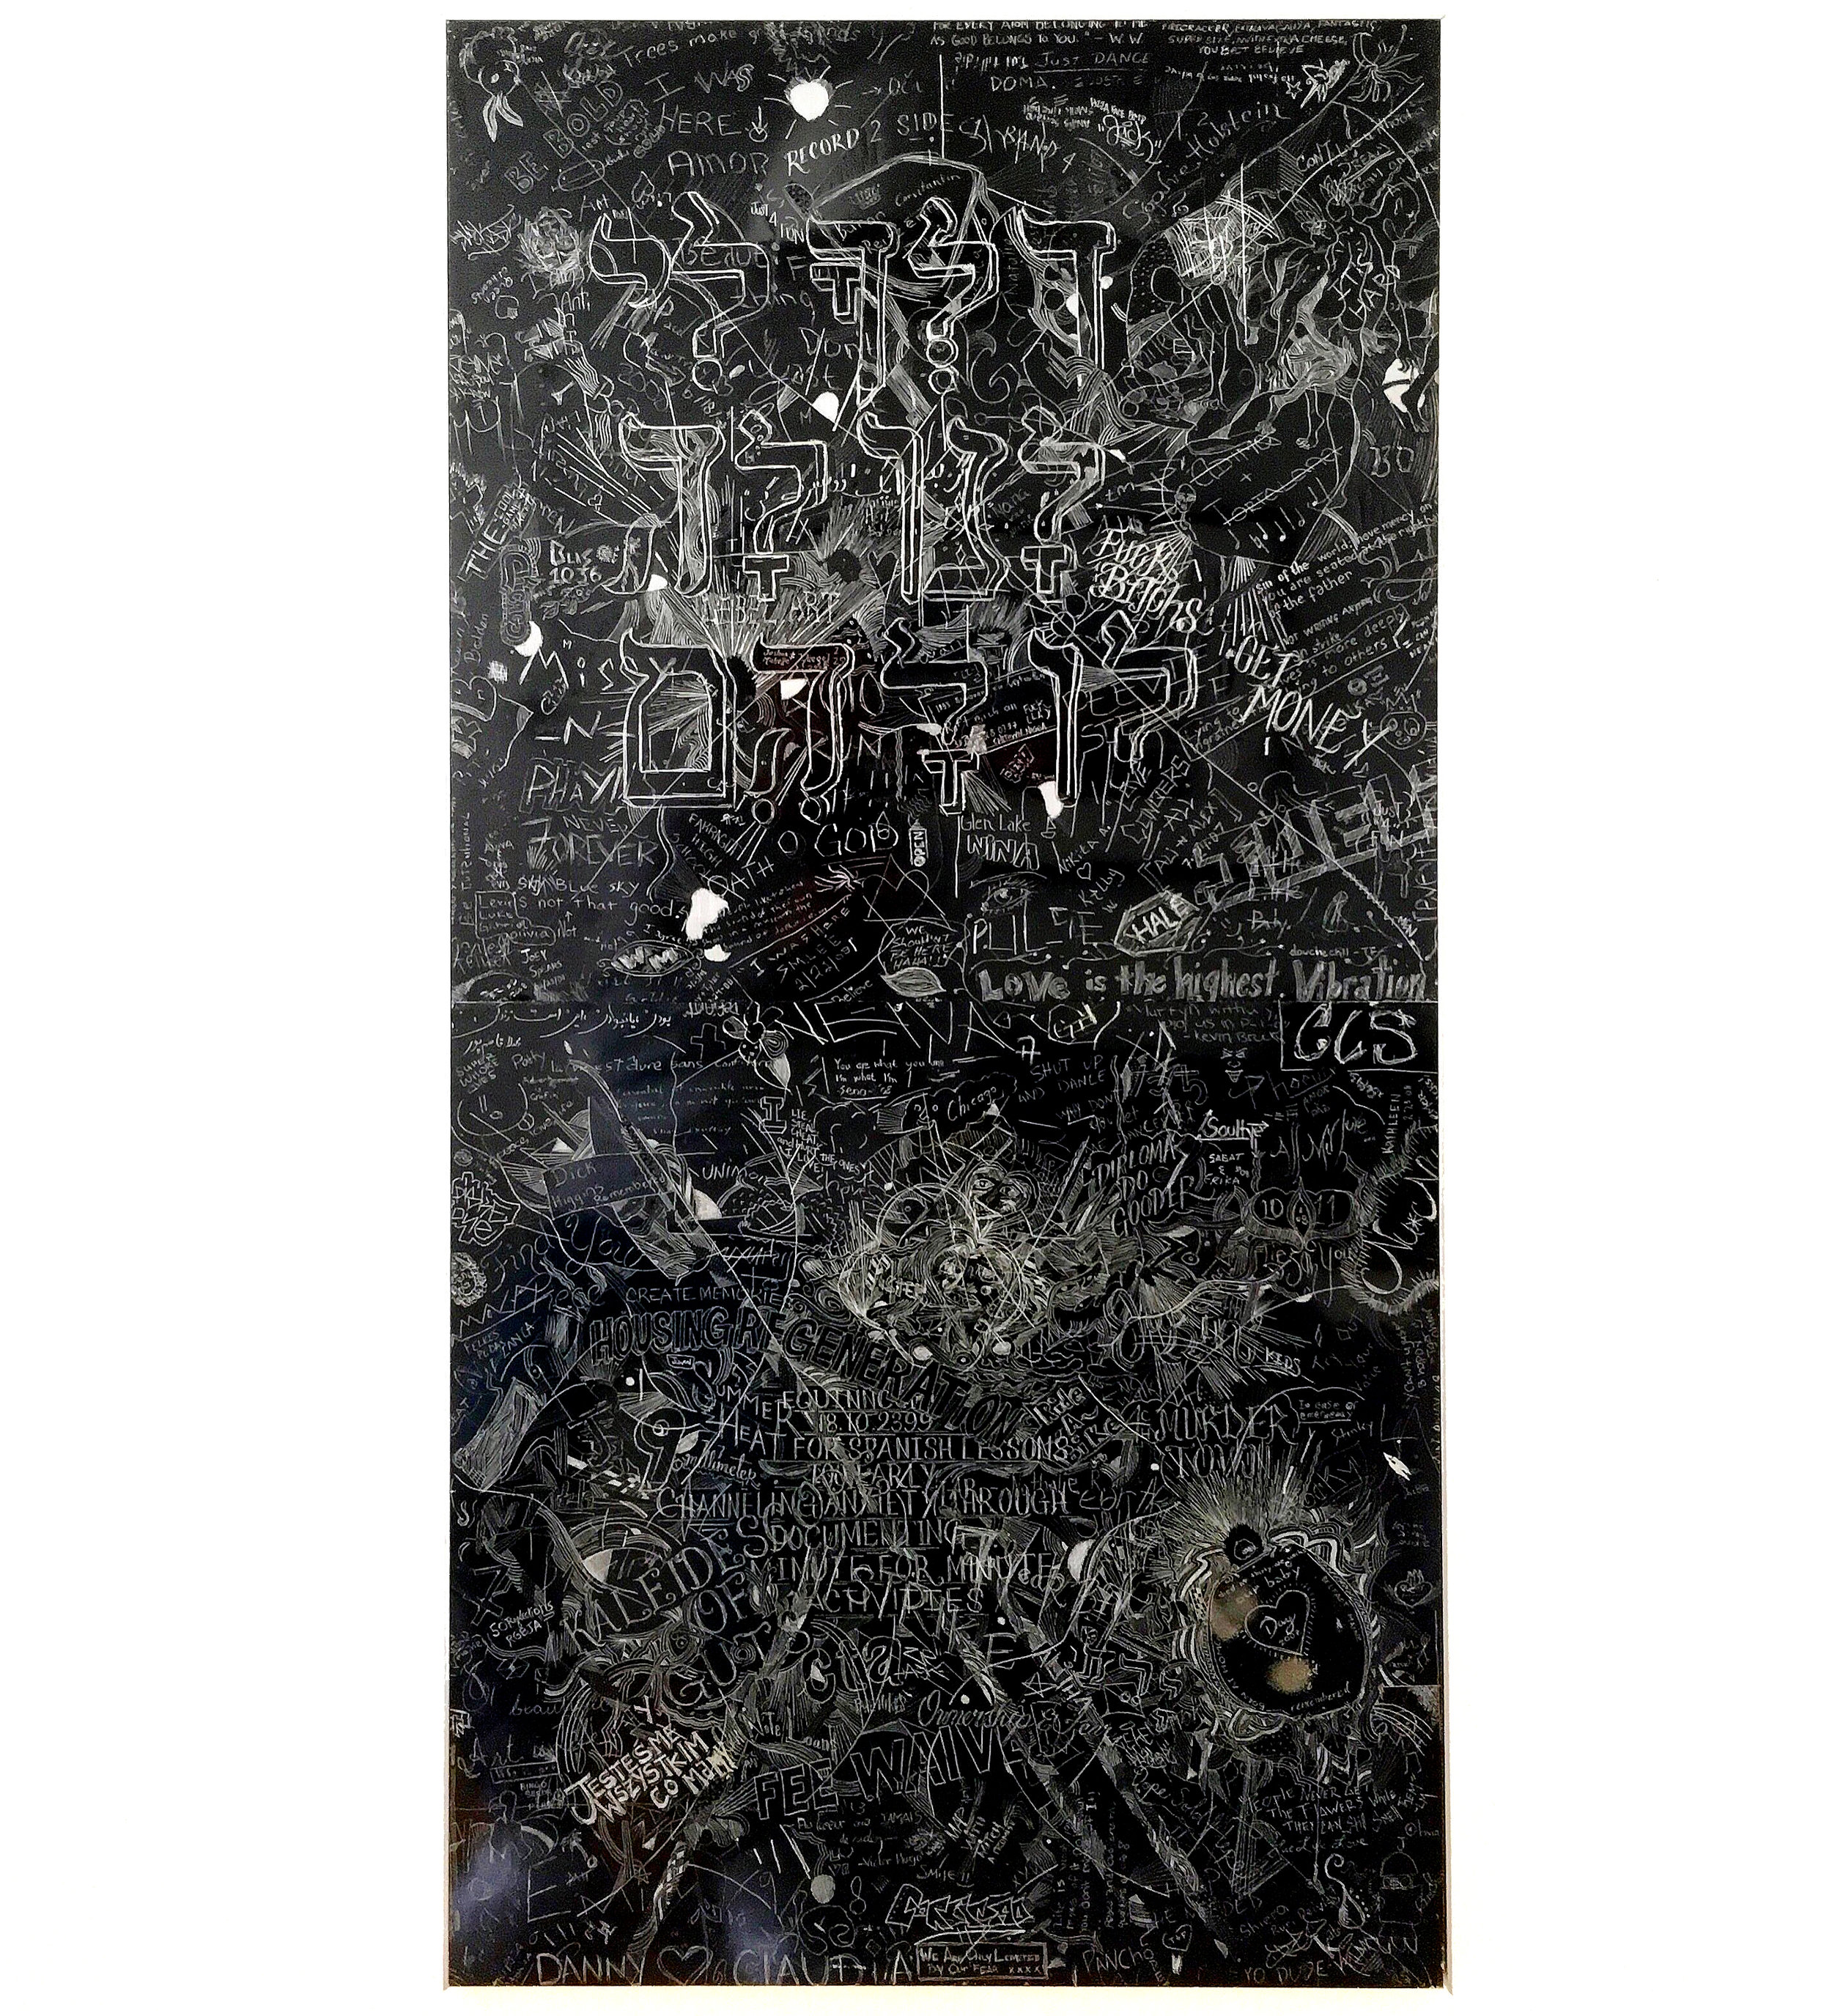 P.S. drawings, Incised aluminum with baked enamel finish with artist frame, crowd sourced drawings from Museum of Contemporary ART, 2008. 2008-12